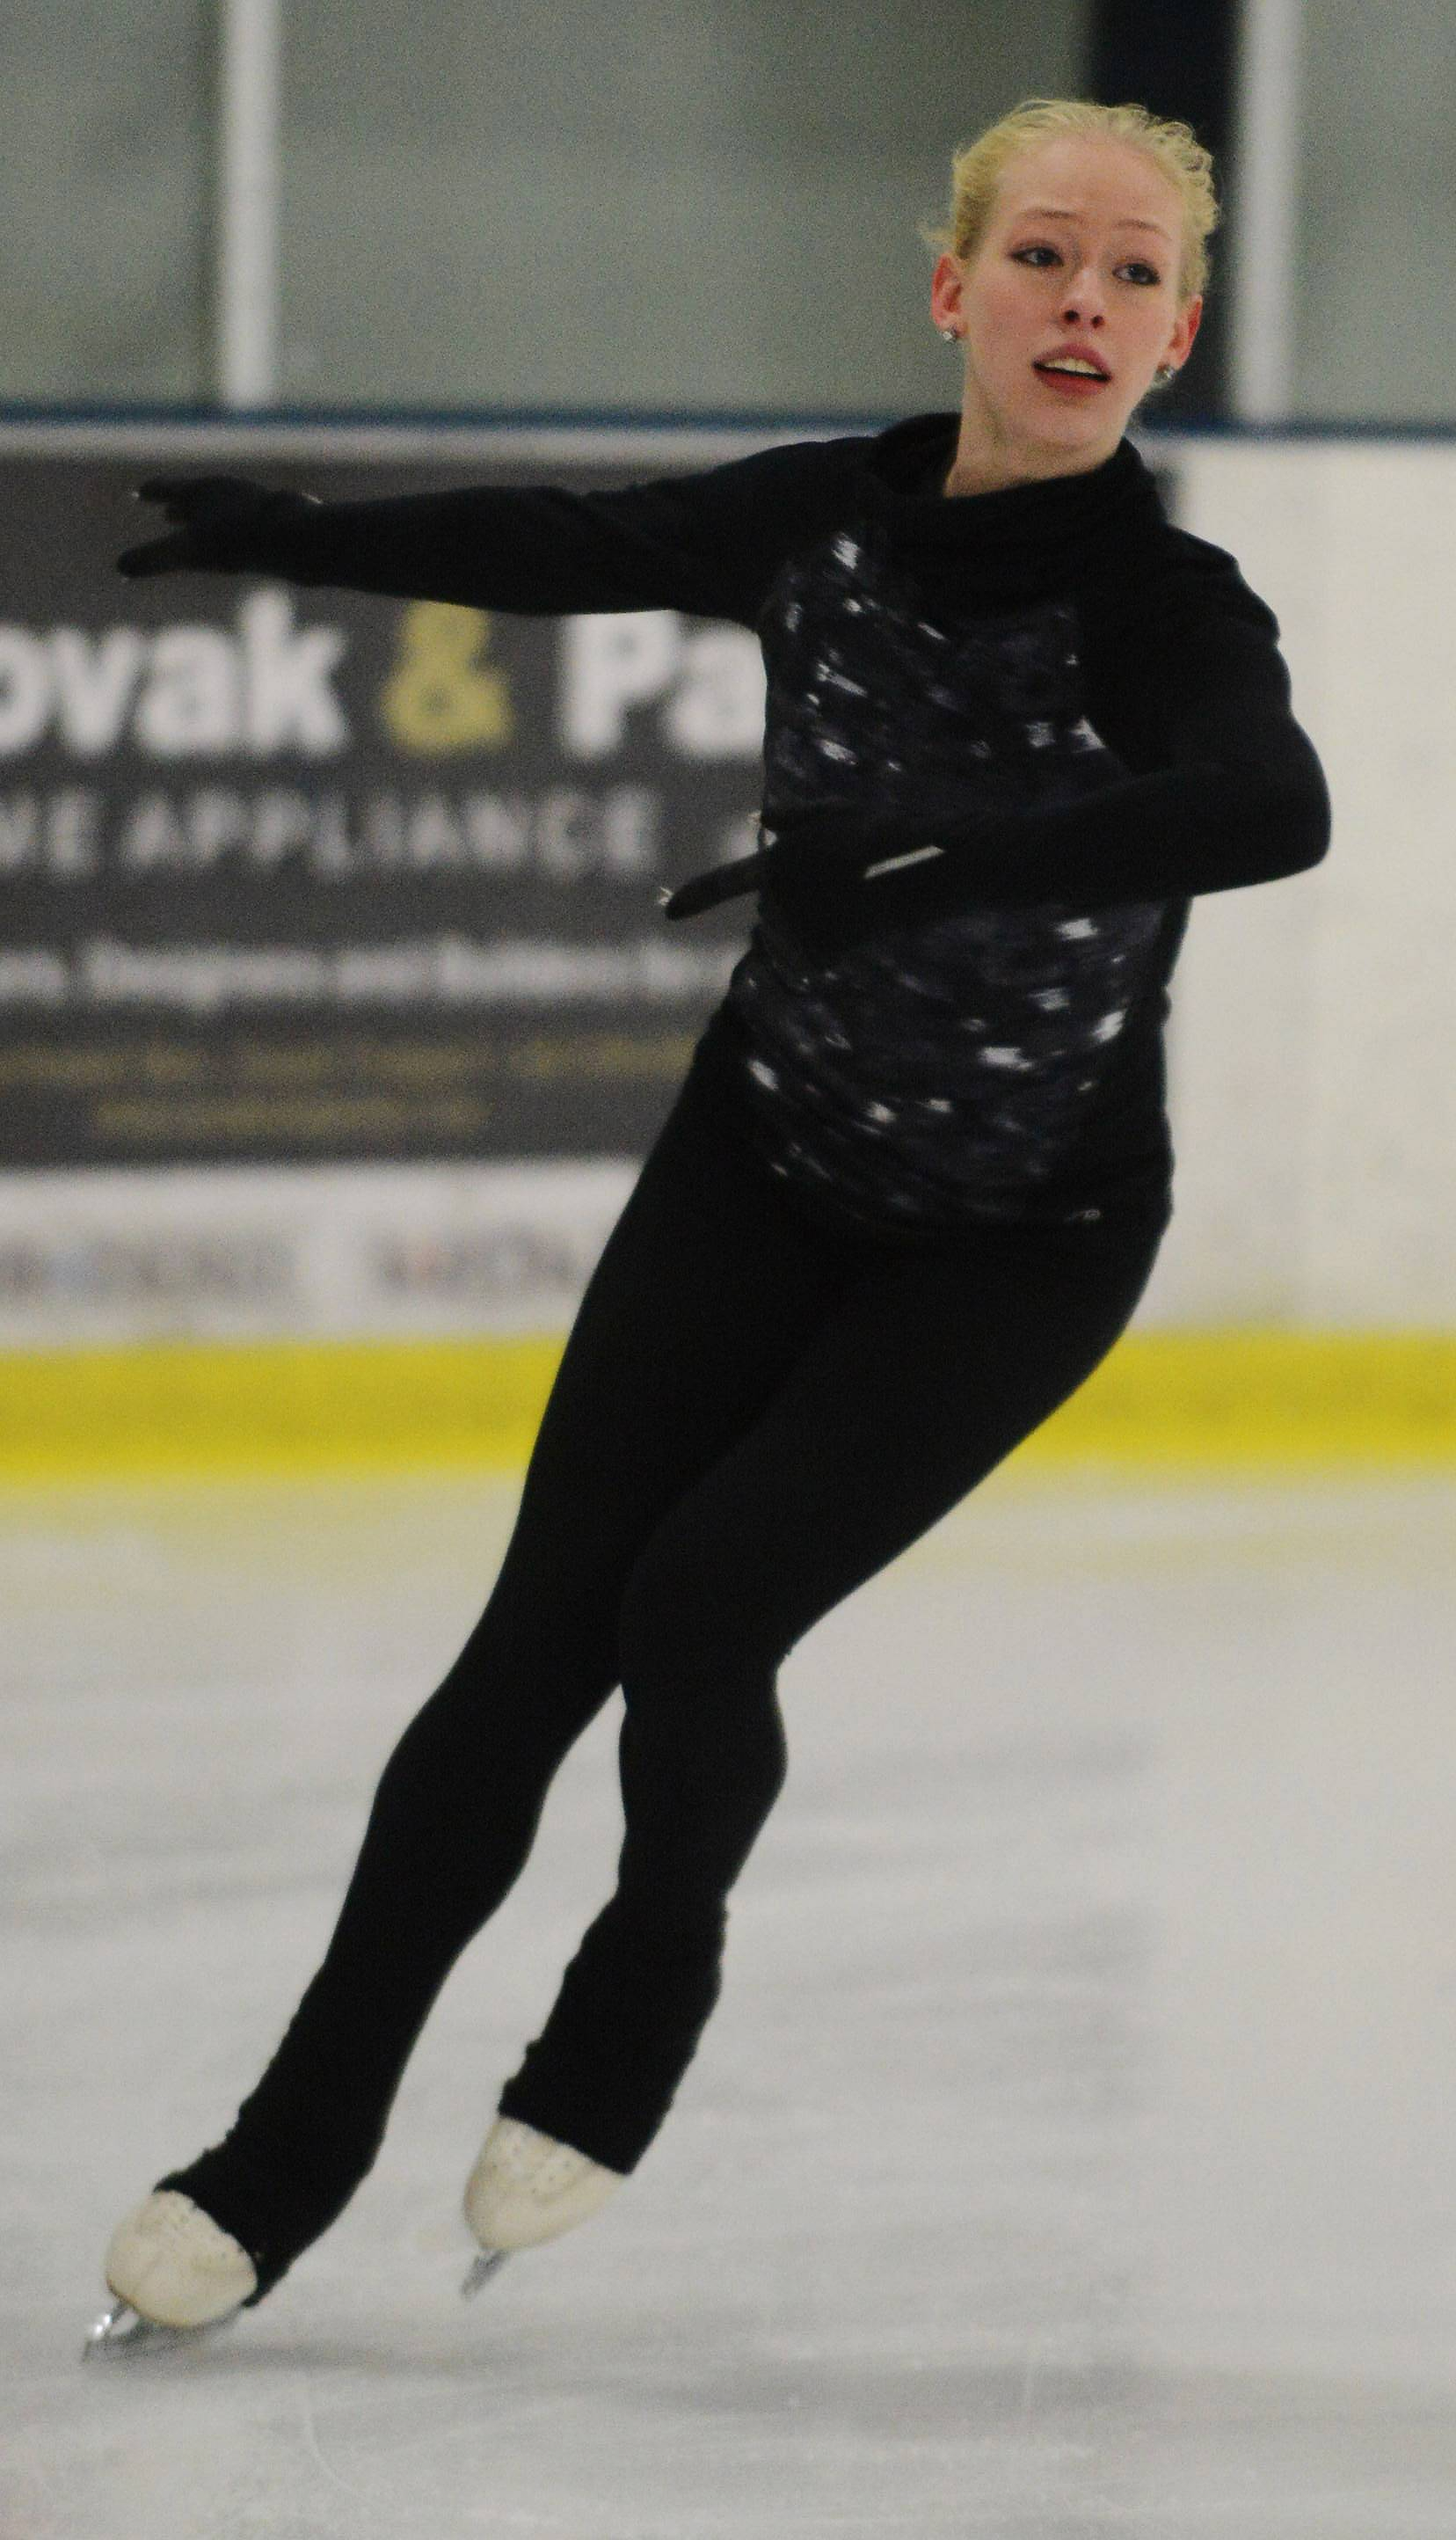 Figure skater Bradie Tennell practices at Twin Rinks Ice Pavillion in Buffalo Grove in January 2016.